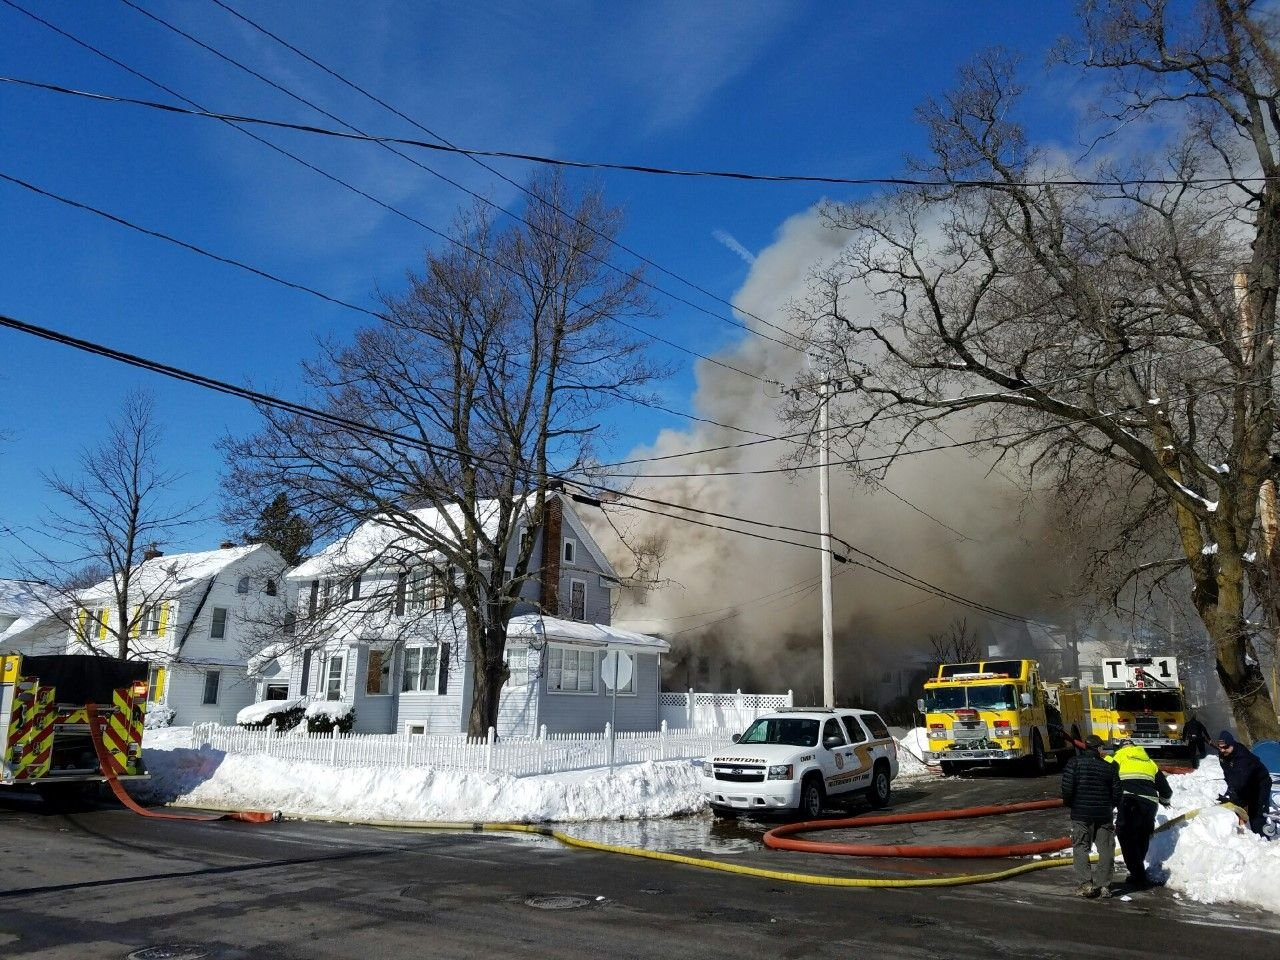 Firefighter dies at Watertown, Massachusetts house fire